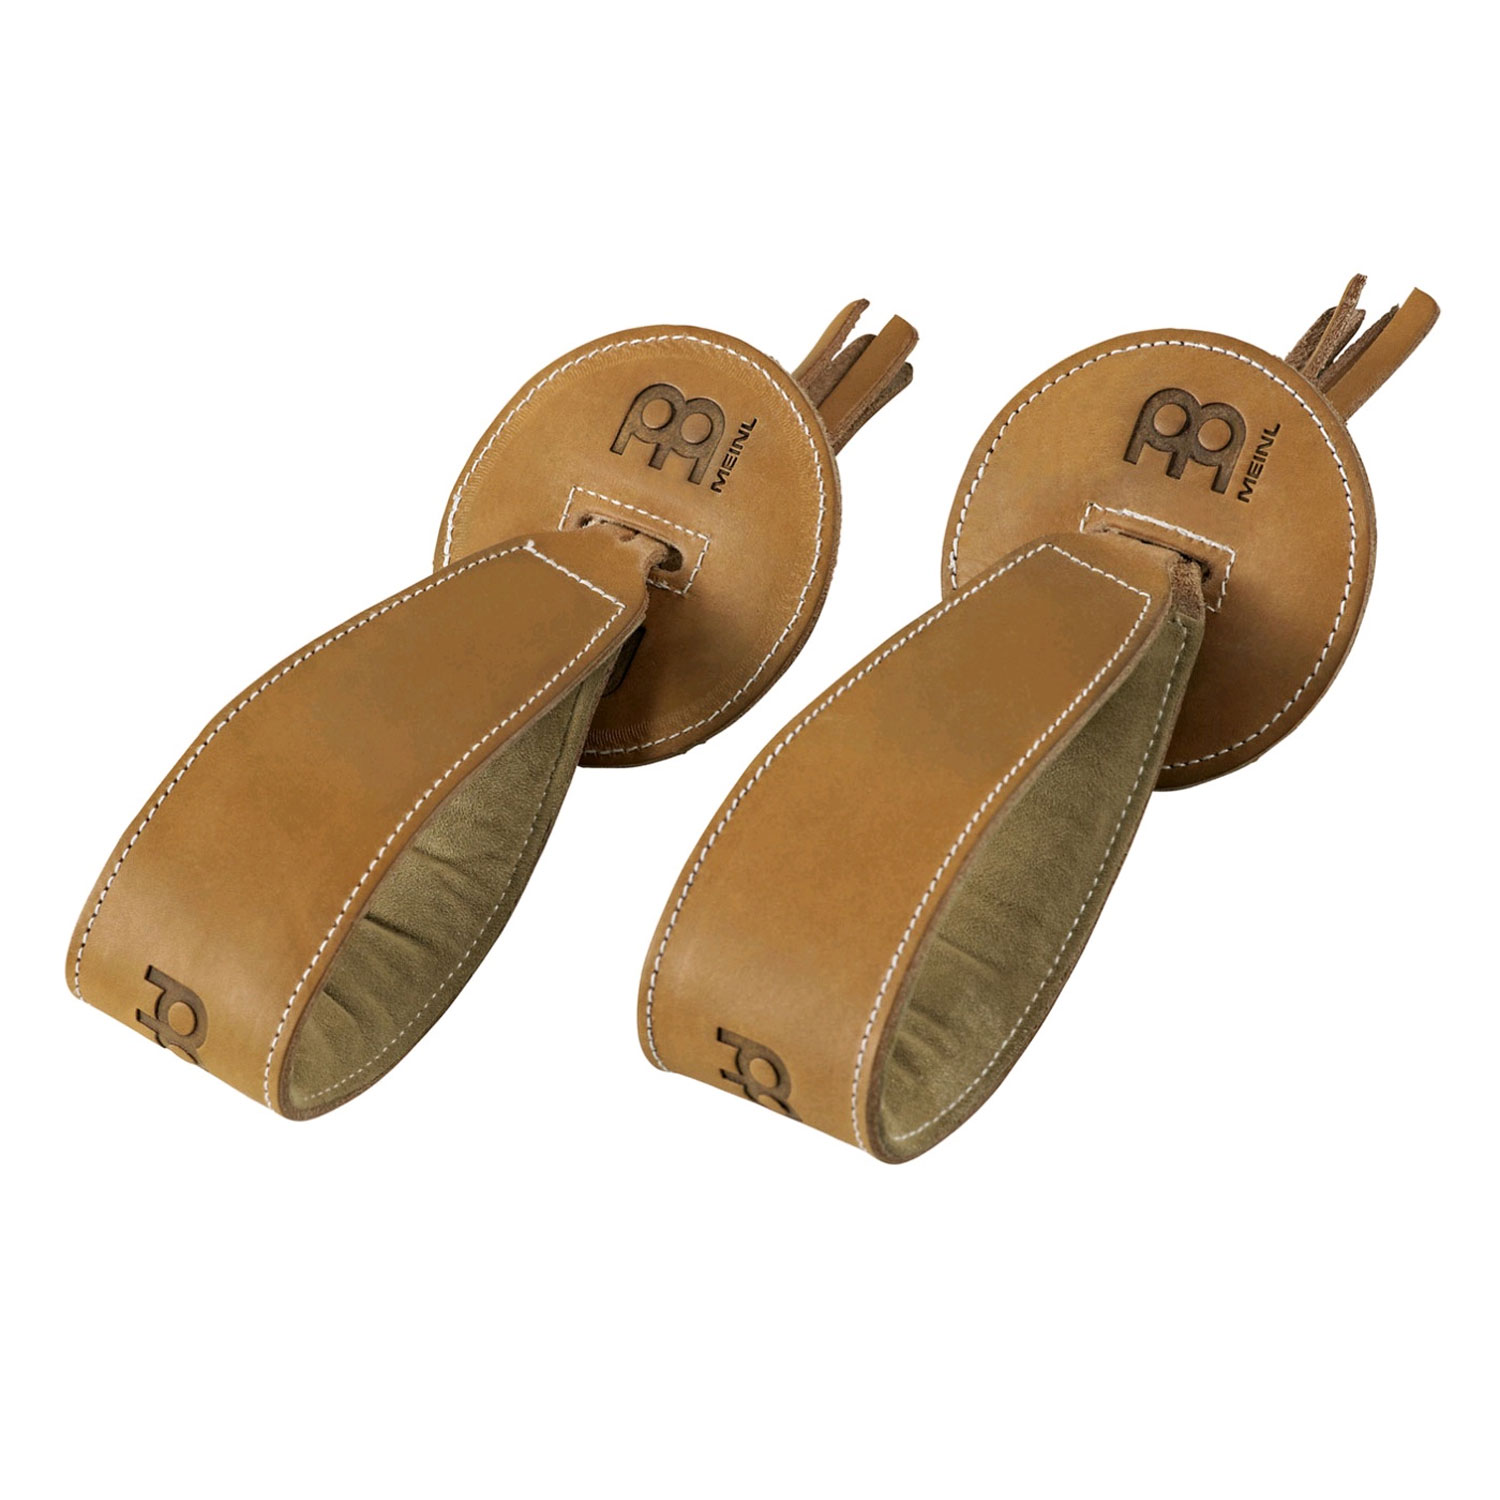 Meinl Professional Leather Cymbal Straps